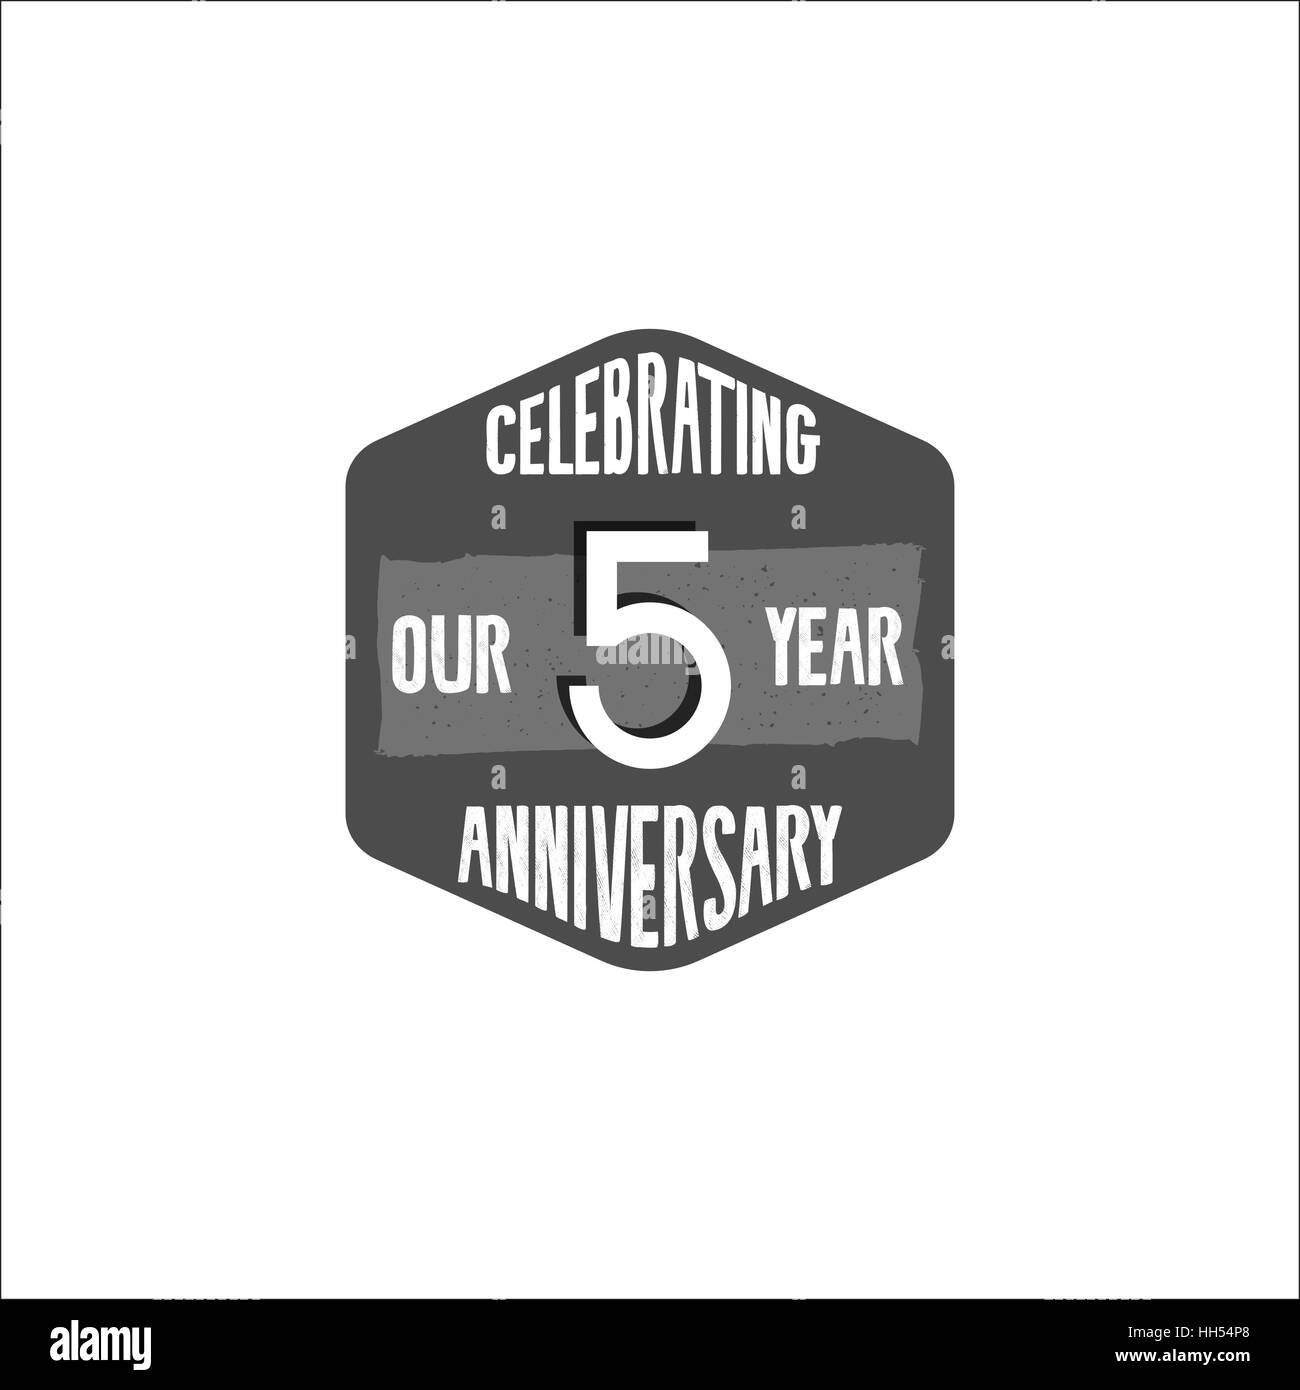 Celebrating 5 year anniversary badge sign and emblem in retro celebrating 5 year anniversary badge sign and emblem in retro color style easy to edit and use your number text vector illustration isolate on whi biocorpaavc Gallery